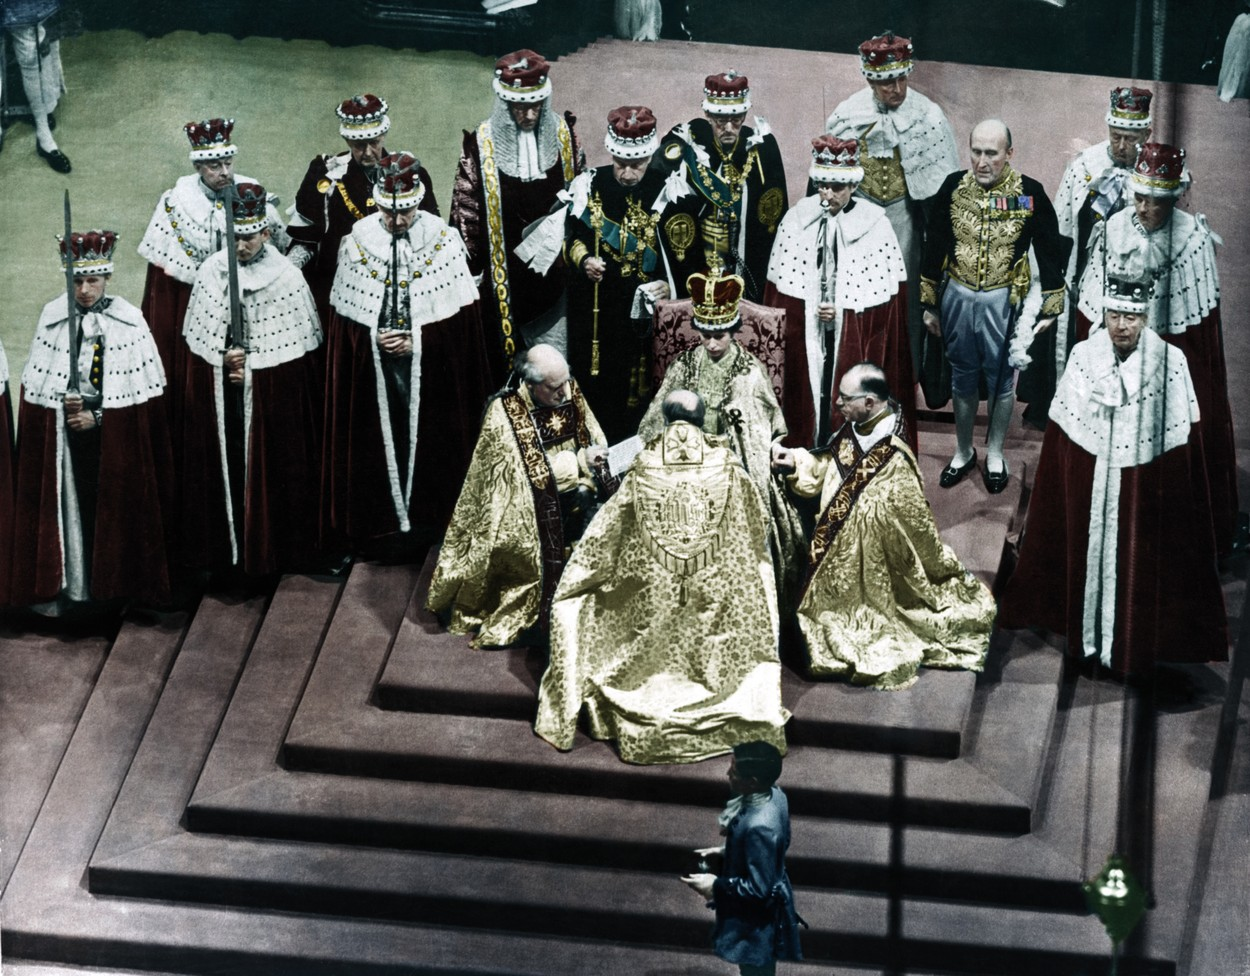 Westminster Cathedral, London, UK: A colourised image of Queen Elizabeth II during the coronation, surrounded by her bishops. STUNNING COLOURISED PHOTOS from a new photobook Retrographic show the day the Queen was coronated with husband Philip by her side have emerged this week, on the Royal couple's platinum wedding anniversary. Photos from the couple's 70 years as husband and wife show the two at a string of state visits from around the world, with one image showing the two posing for a picture with former U.S. President John F Kennedy and first lady Jackie. / Public Domain / mediadrumworld.com, Image: 355777897, License: Rights-managed, Restrictions: , Model Release: no, Credit line: Public Domain / mediadrumworld.c / Media Drum World / Profimedia